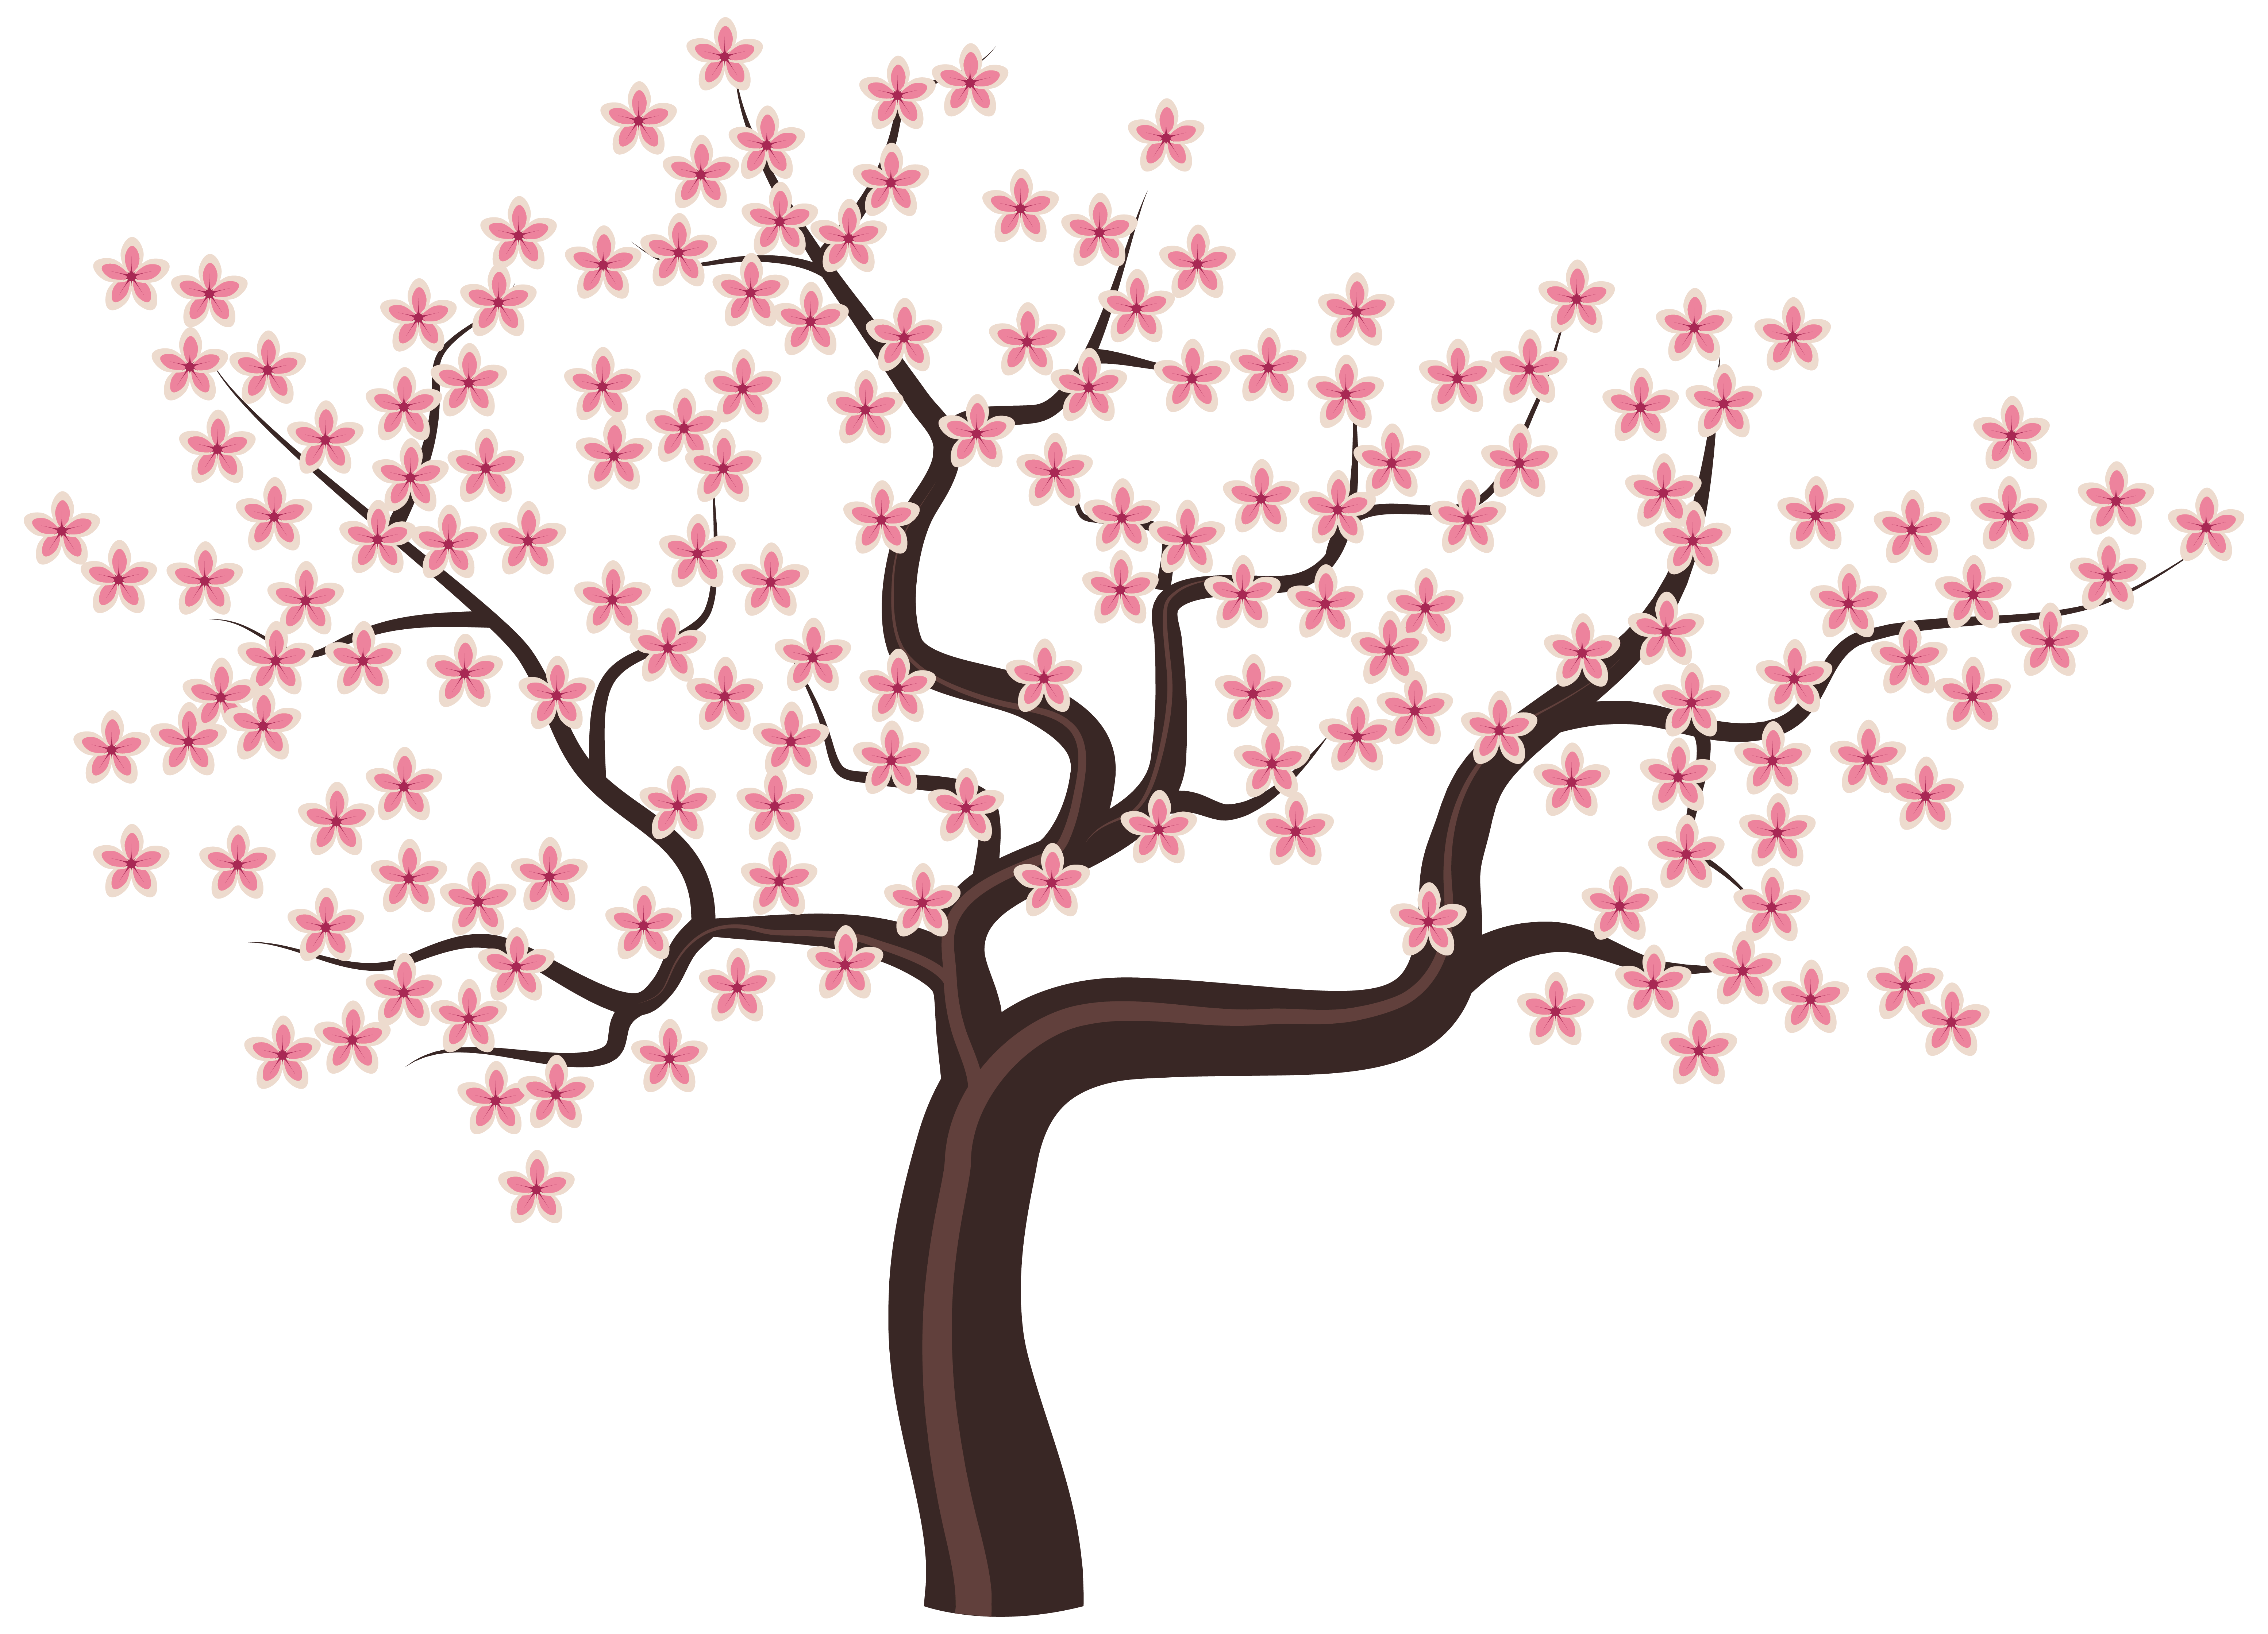 Pink Flower clipart flowering tree Gallery View size PNG Flowers